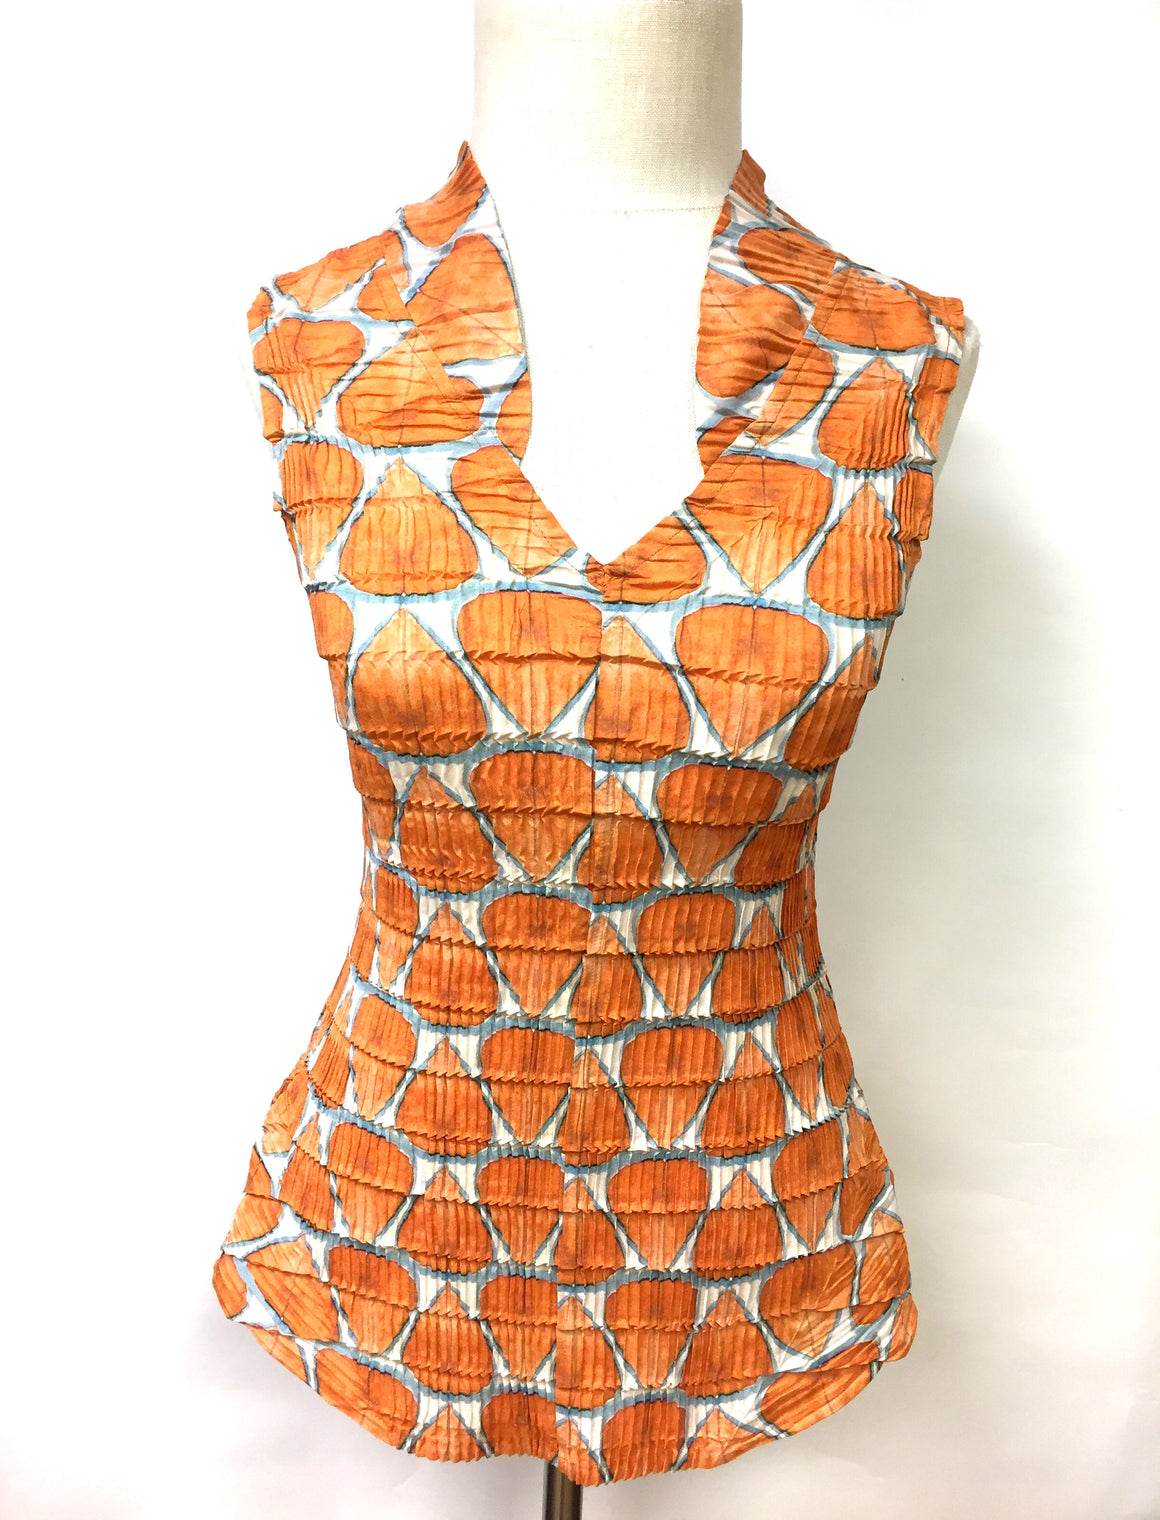 bisbiz.com BABETTE New with Tags  Burnt-Orange Abstract-Print Crinkled Polyester Sleeveless Blouse   Size: XS / S - Bis Luxury Resale